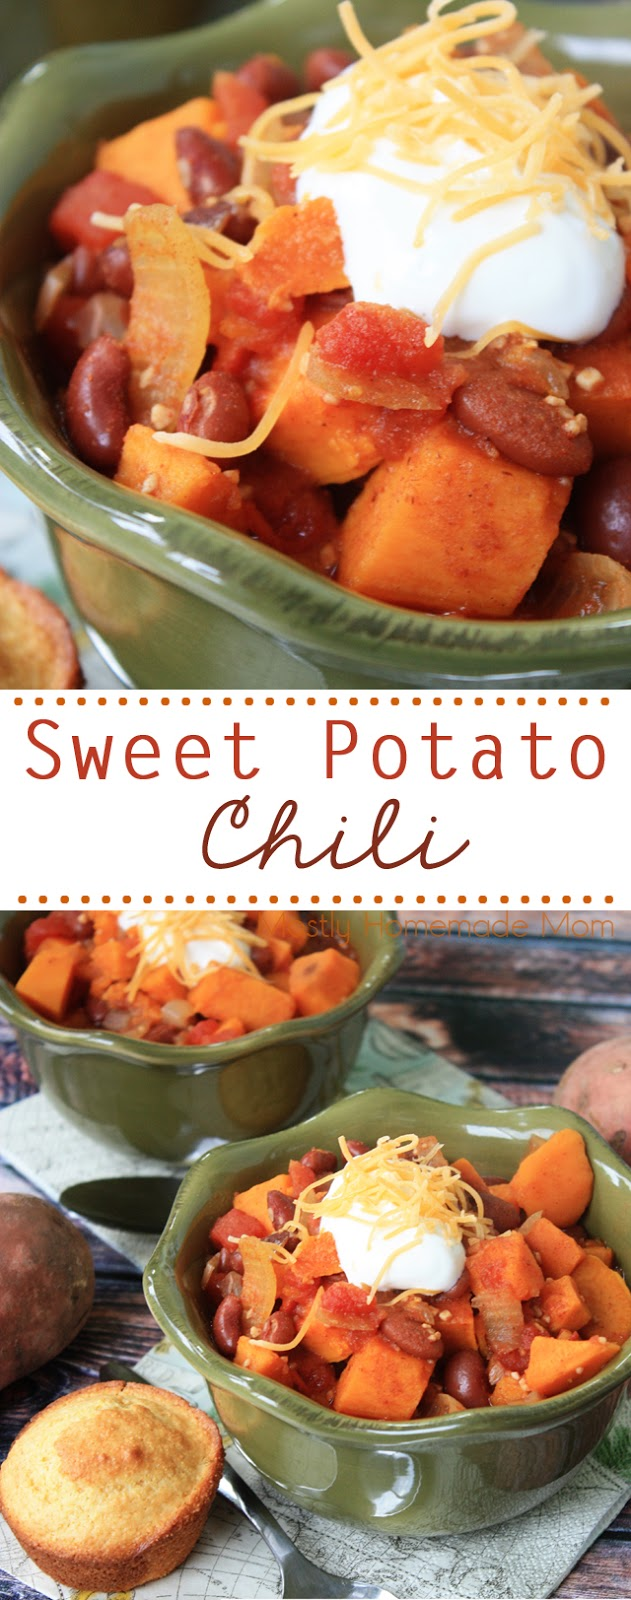 Recipe for Vegetarian Chili with Sweet Potatoes